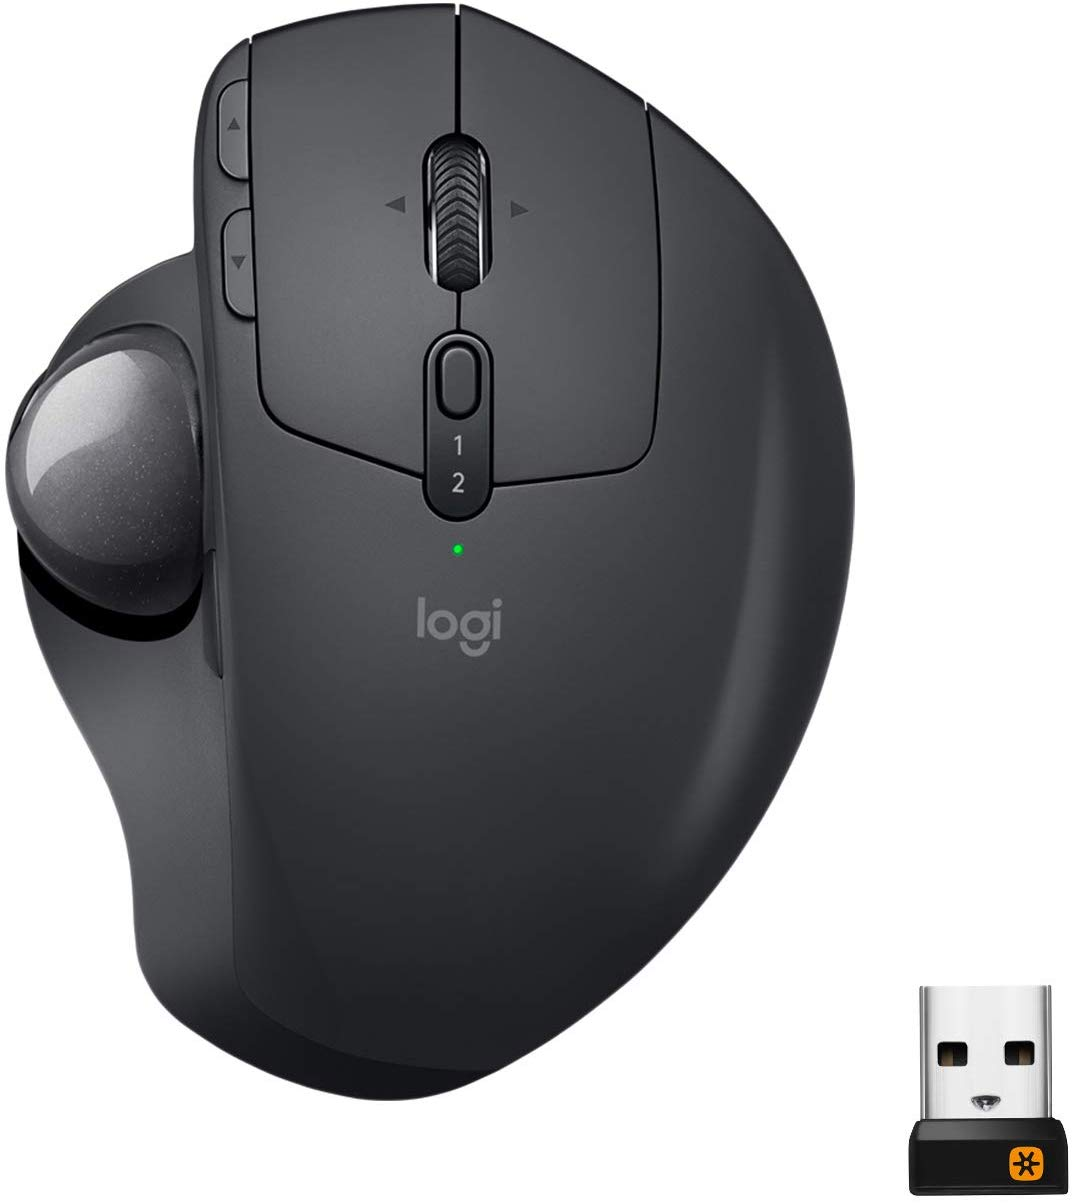 Logitech mx ergo advanced